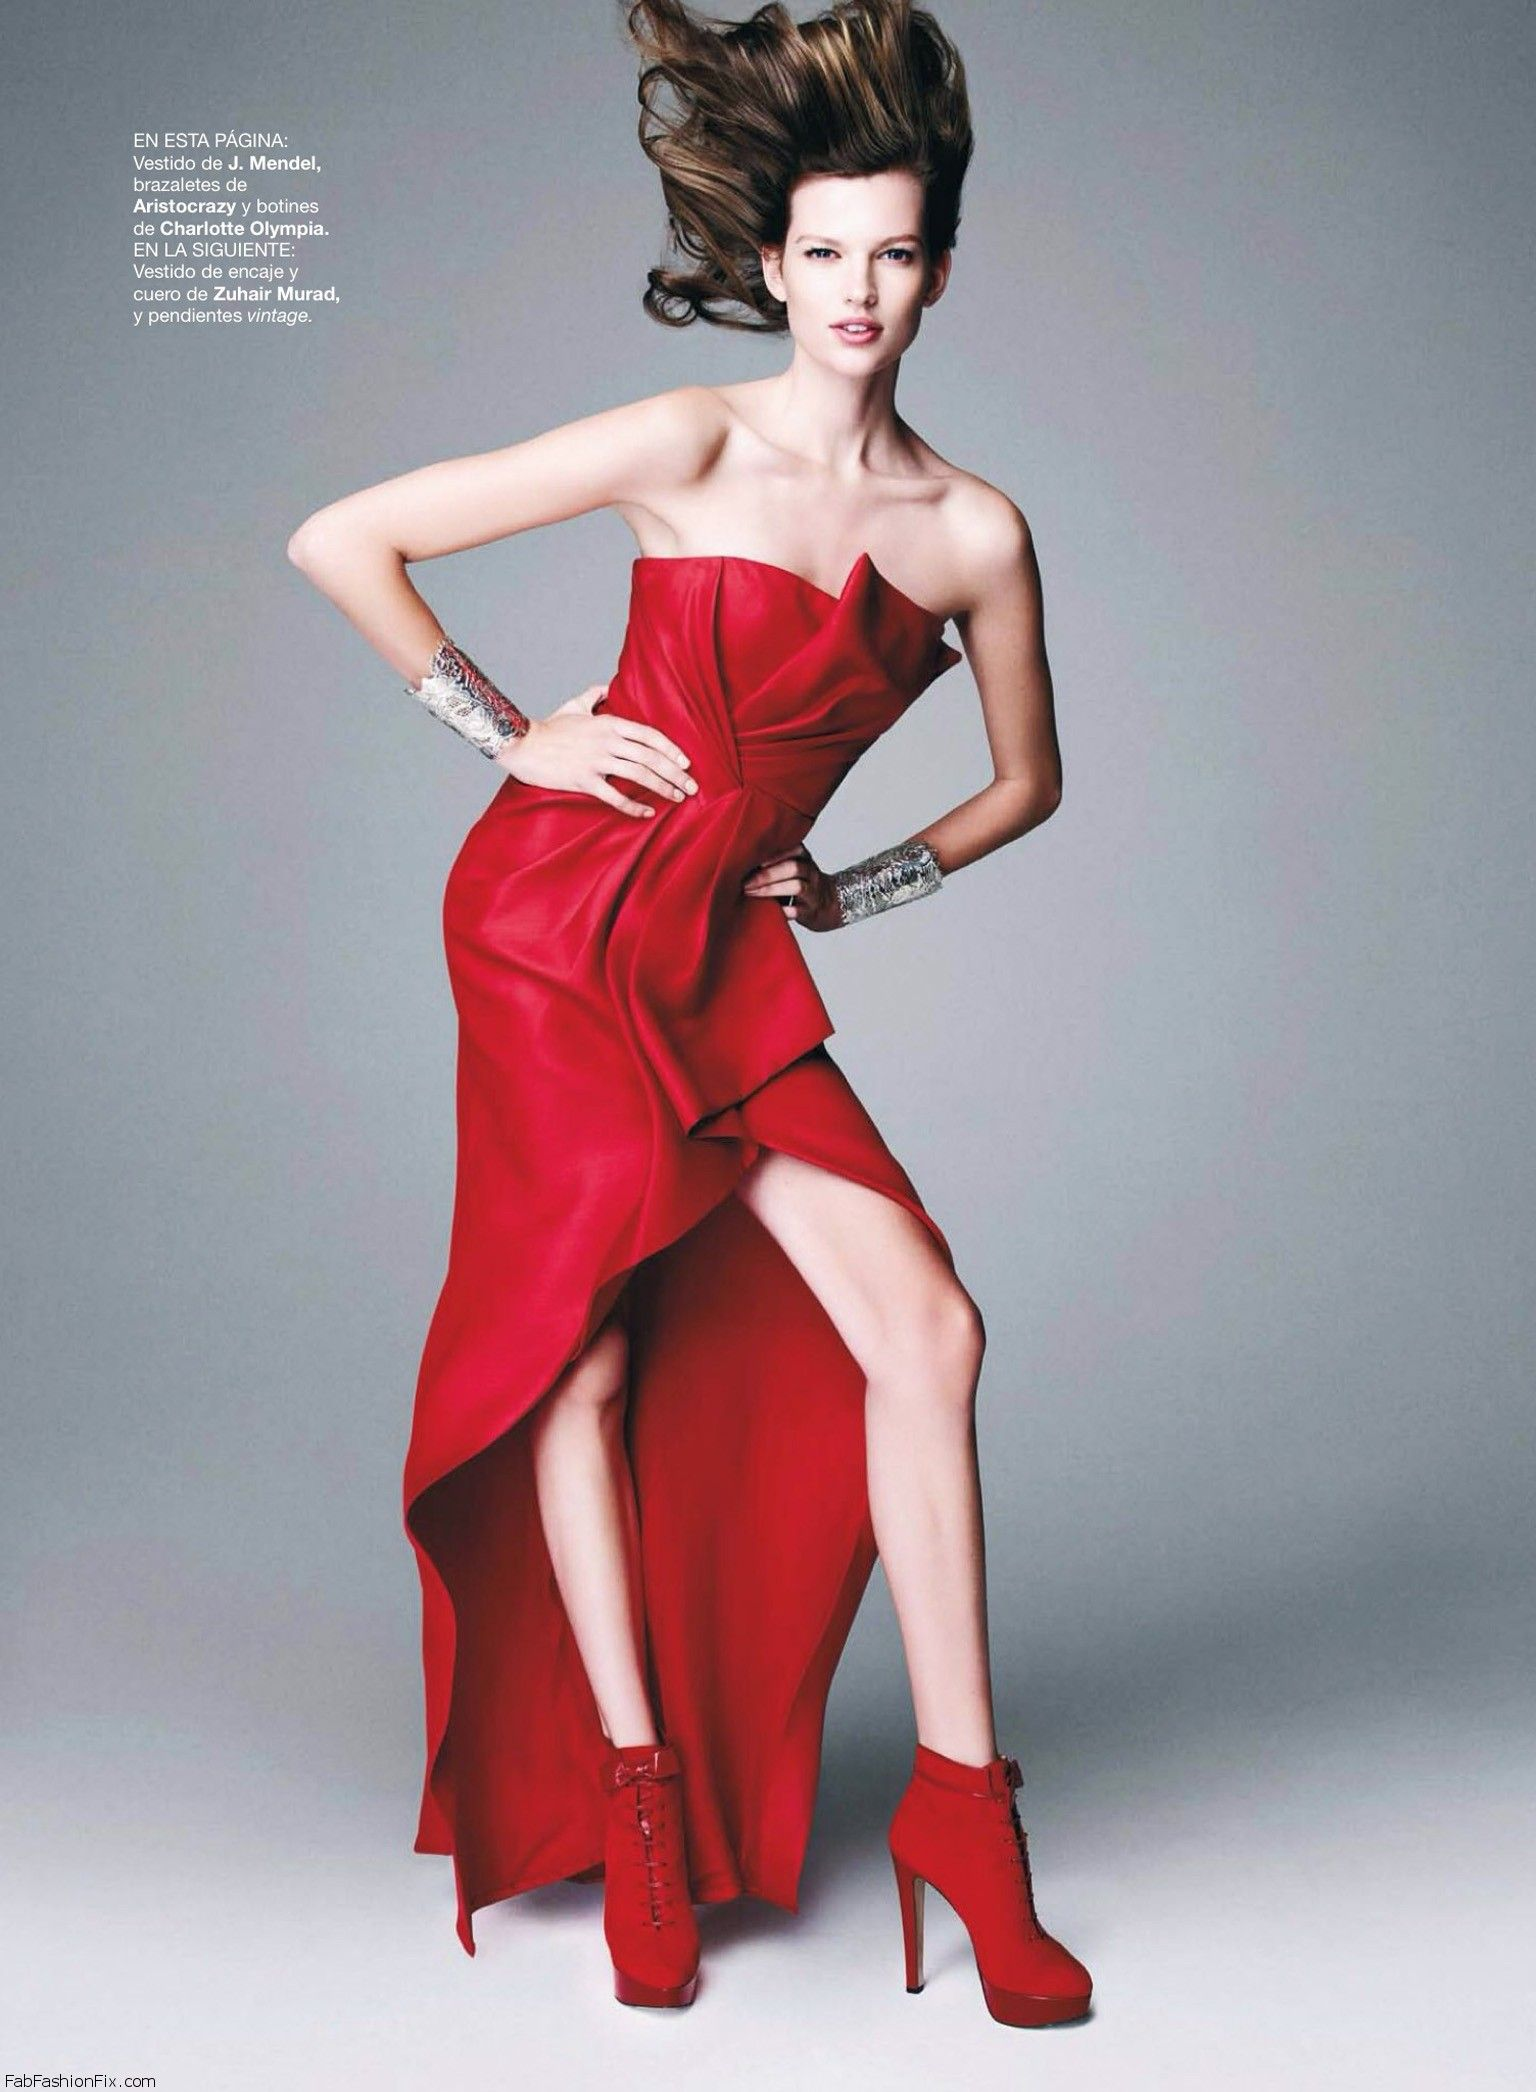 fashion_scans_remastered-bette_frank-harpers_bazaar_espana-december_2013-scanned_by_vampirehorde-hq-6